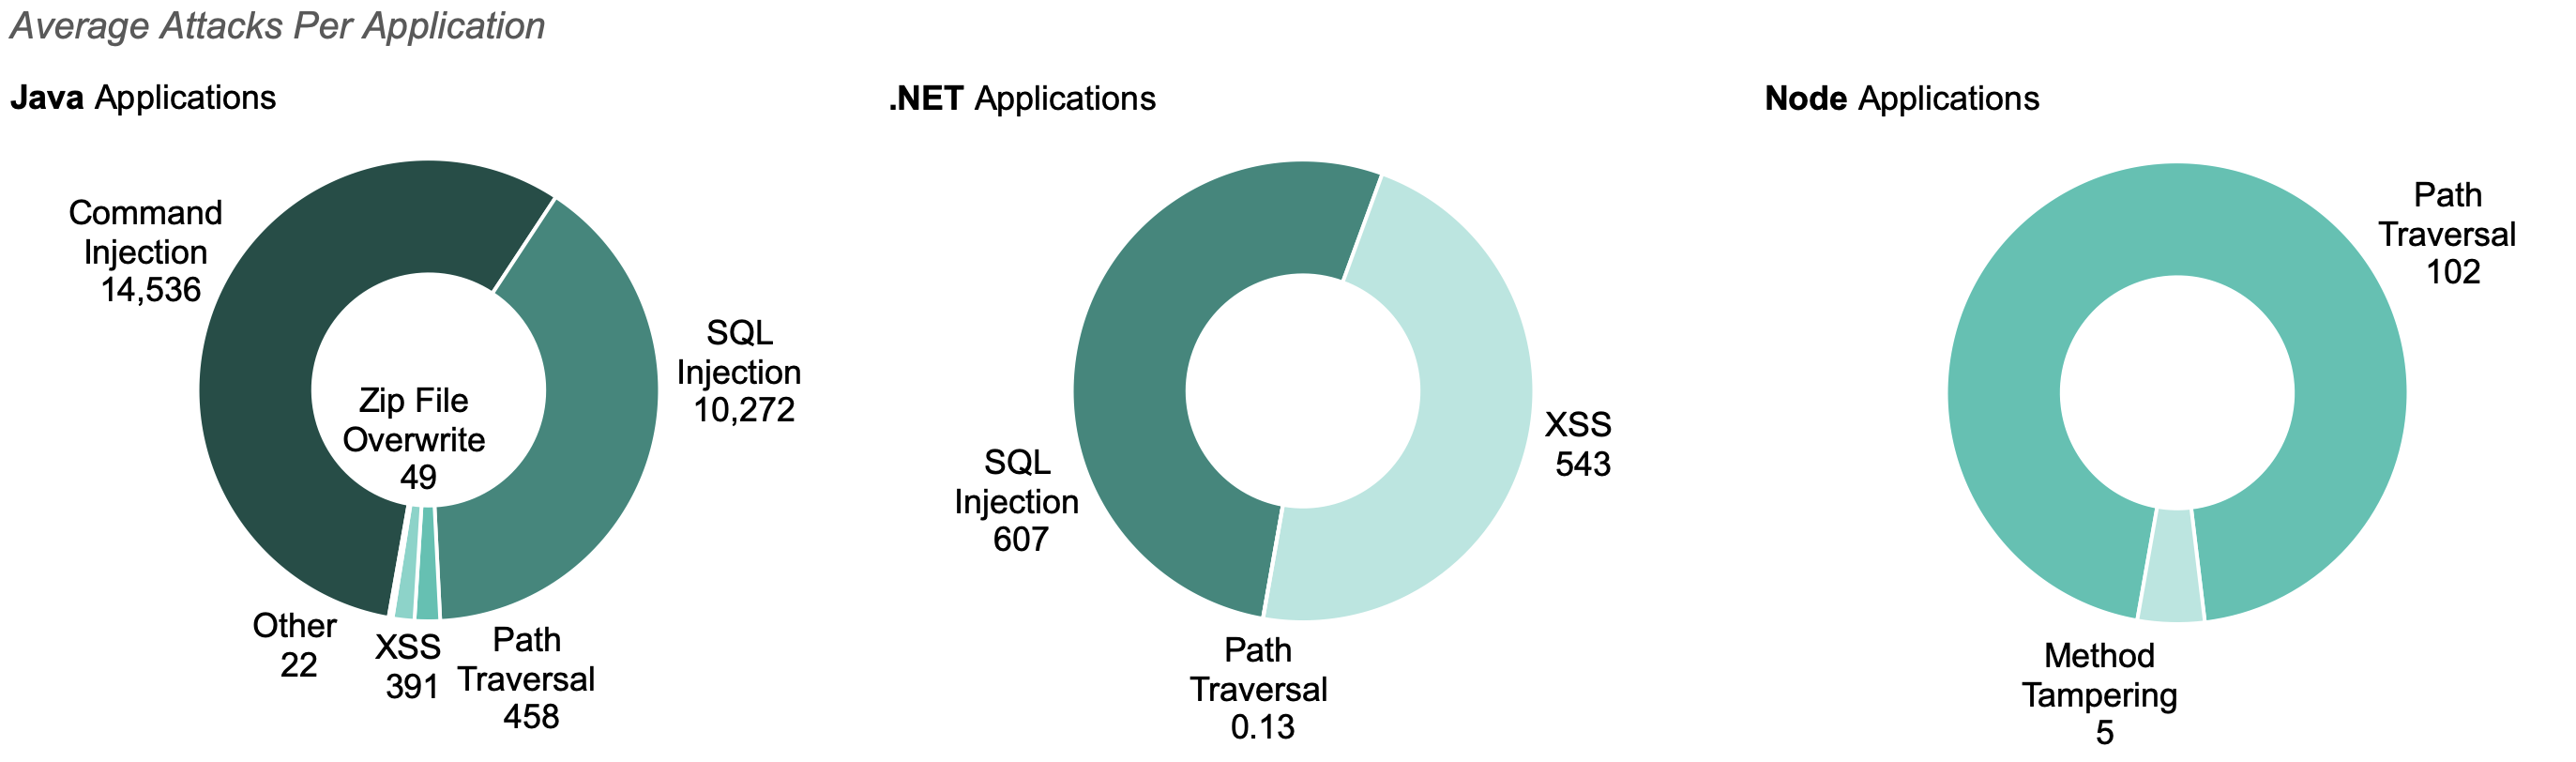 Average numbers of attacks, by category, per application for Java, .NET and Node applications.